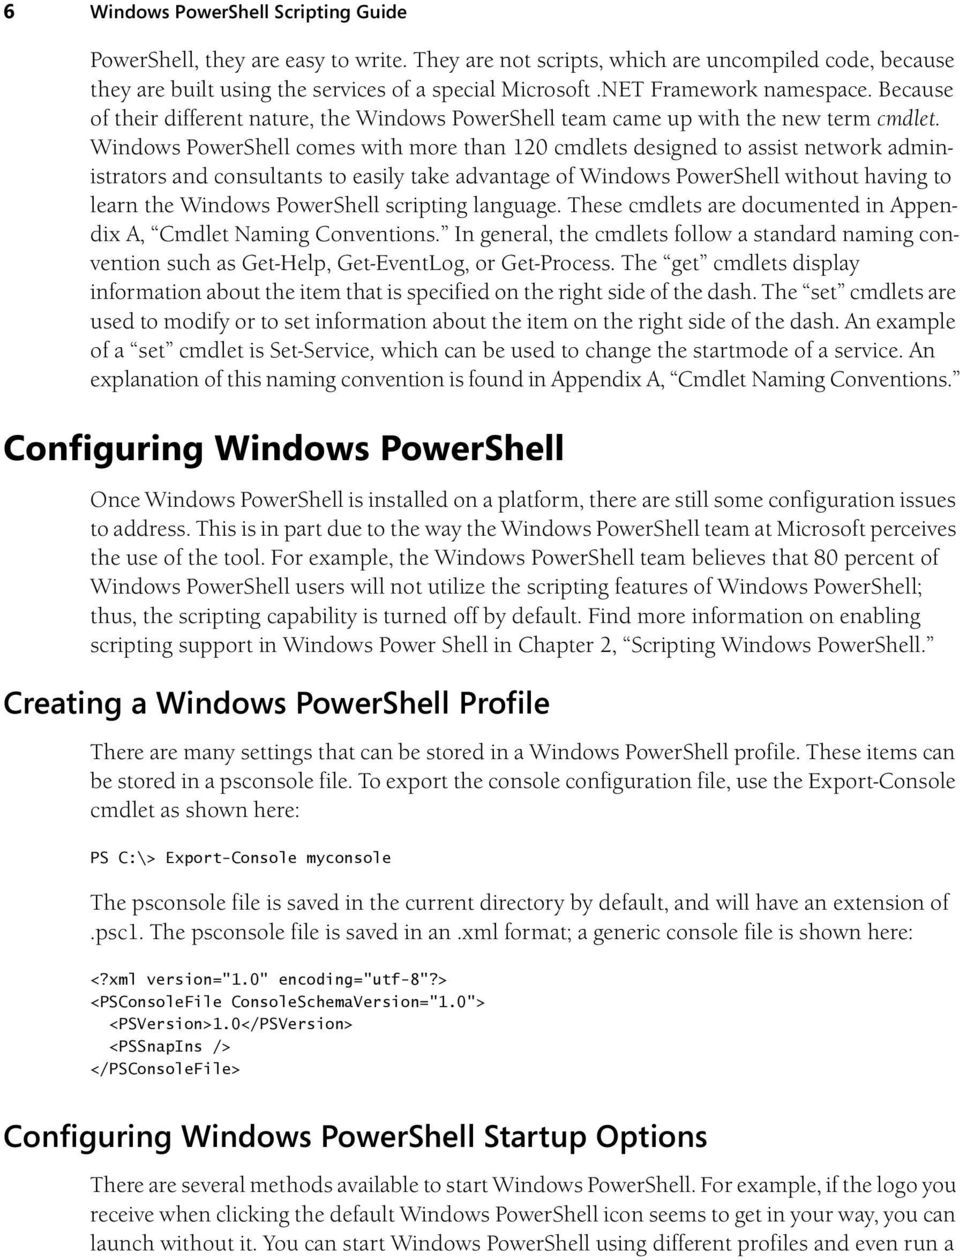 Windows PowerShell comes with more than 120 cmdlets designed to assist network administrators and consultants to easily take advantage of Windows PowerShell without having to learn the Windows